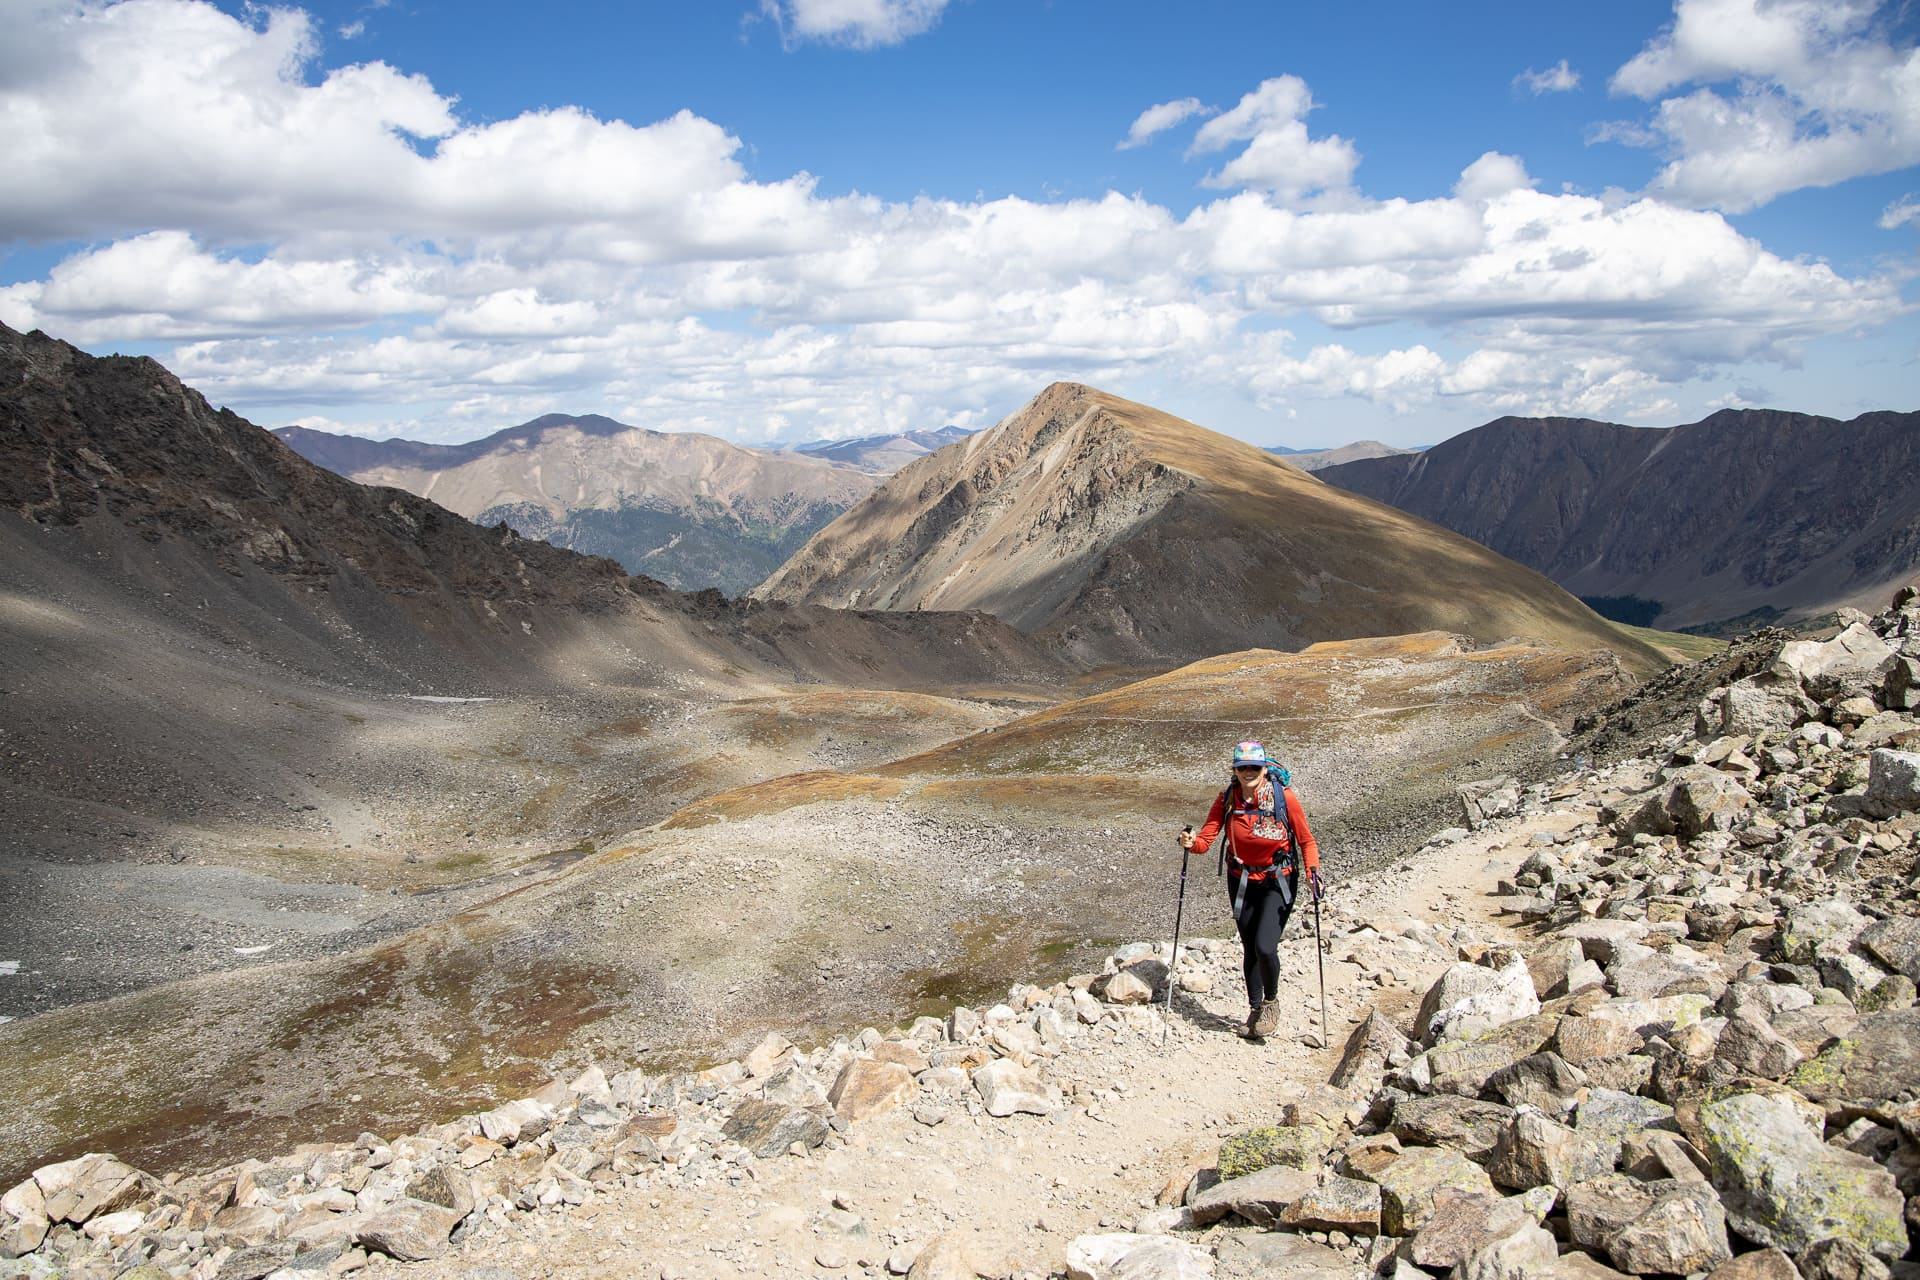 11 Benefits of Hiking for Health and Well-Being